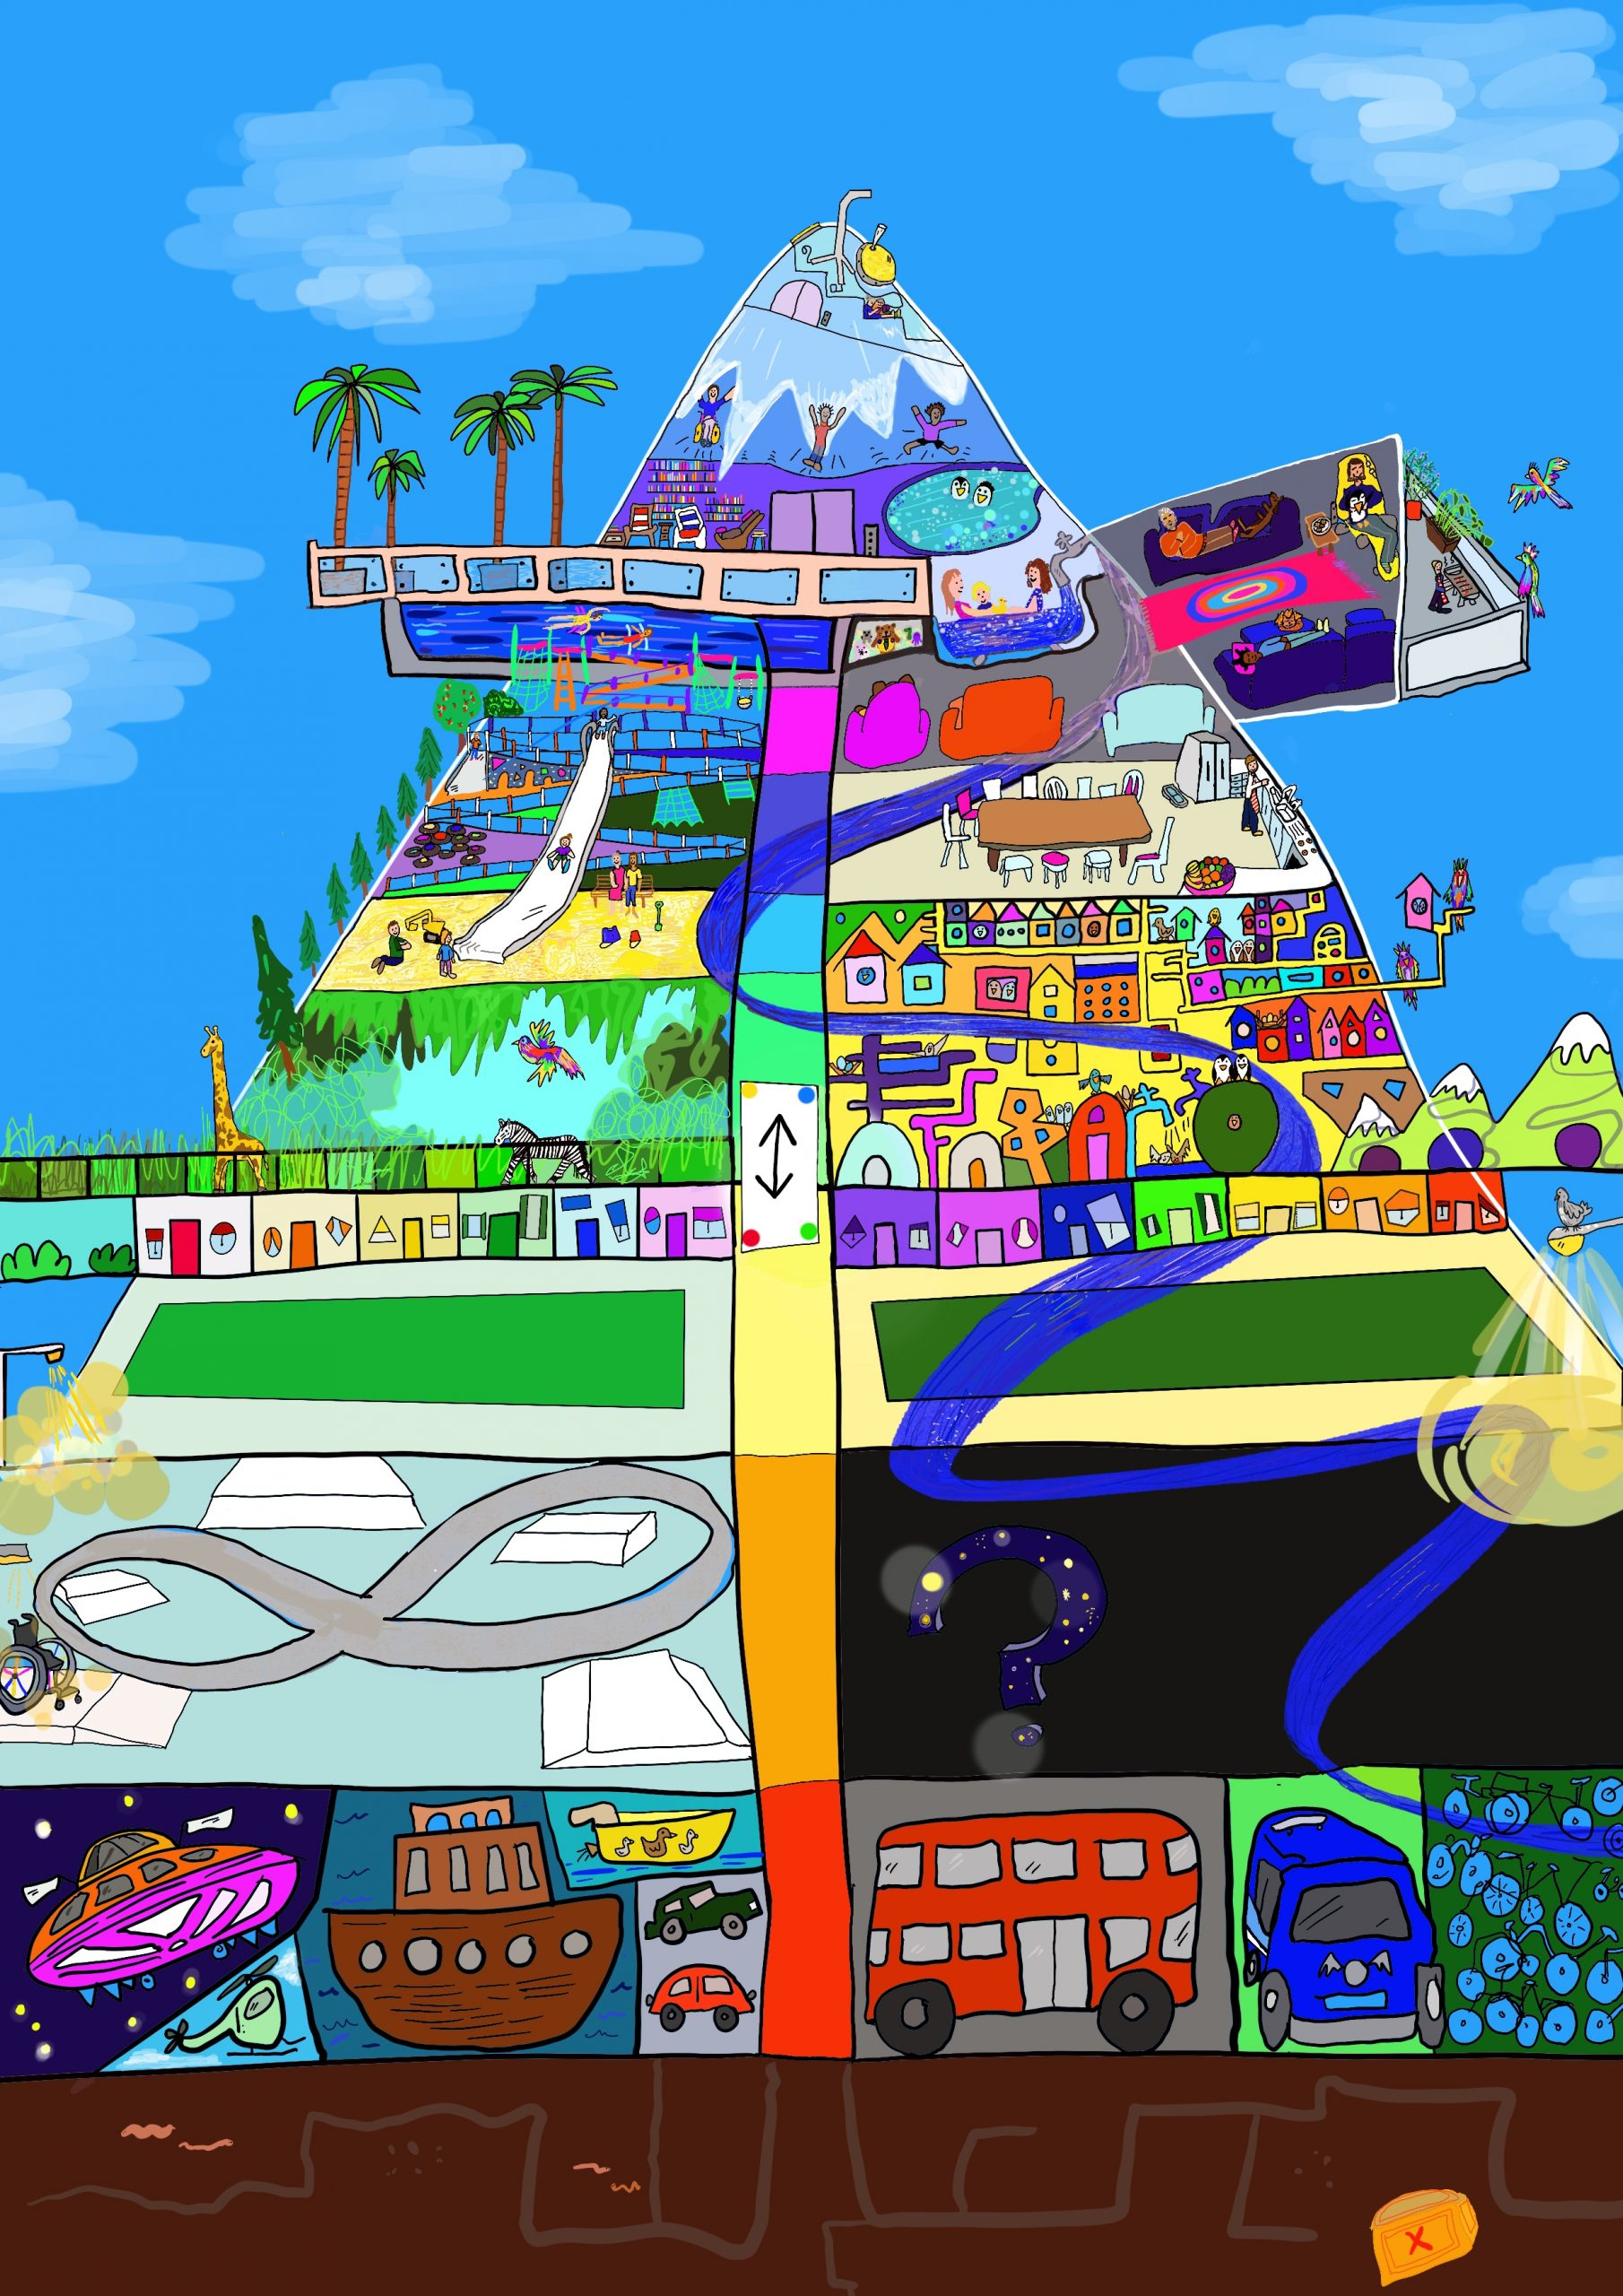 A digital drawing of Touretteshero's secret mountain world which includes scenes such as penguins in a jacuzzi, a big slide with children playing and sliding down, a safari with a zebra and bird of paradise, a spaceship, a helicopter, an accessible racetrack, and a swimming pool